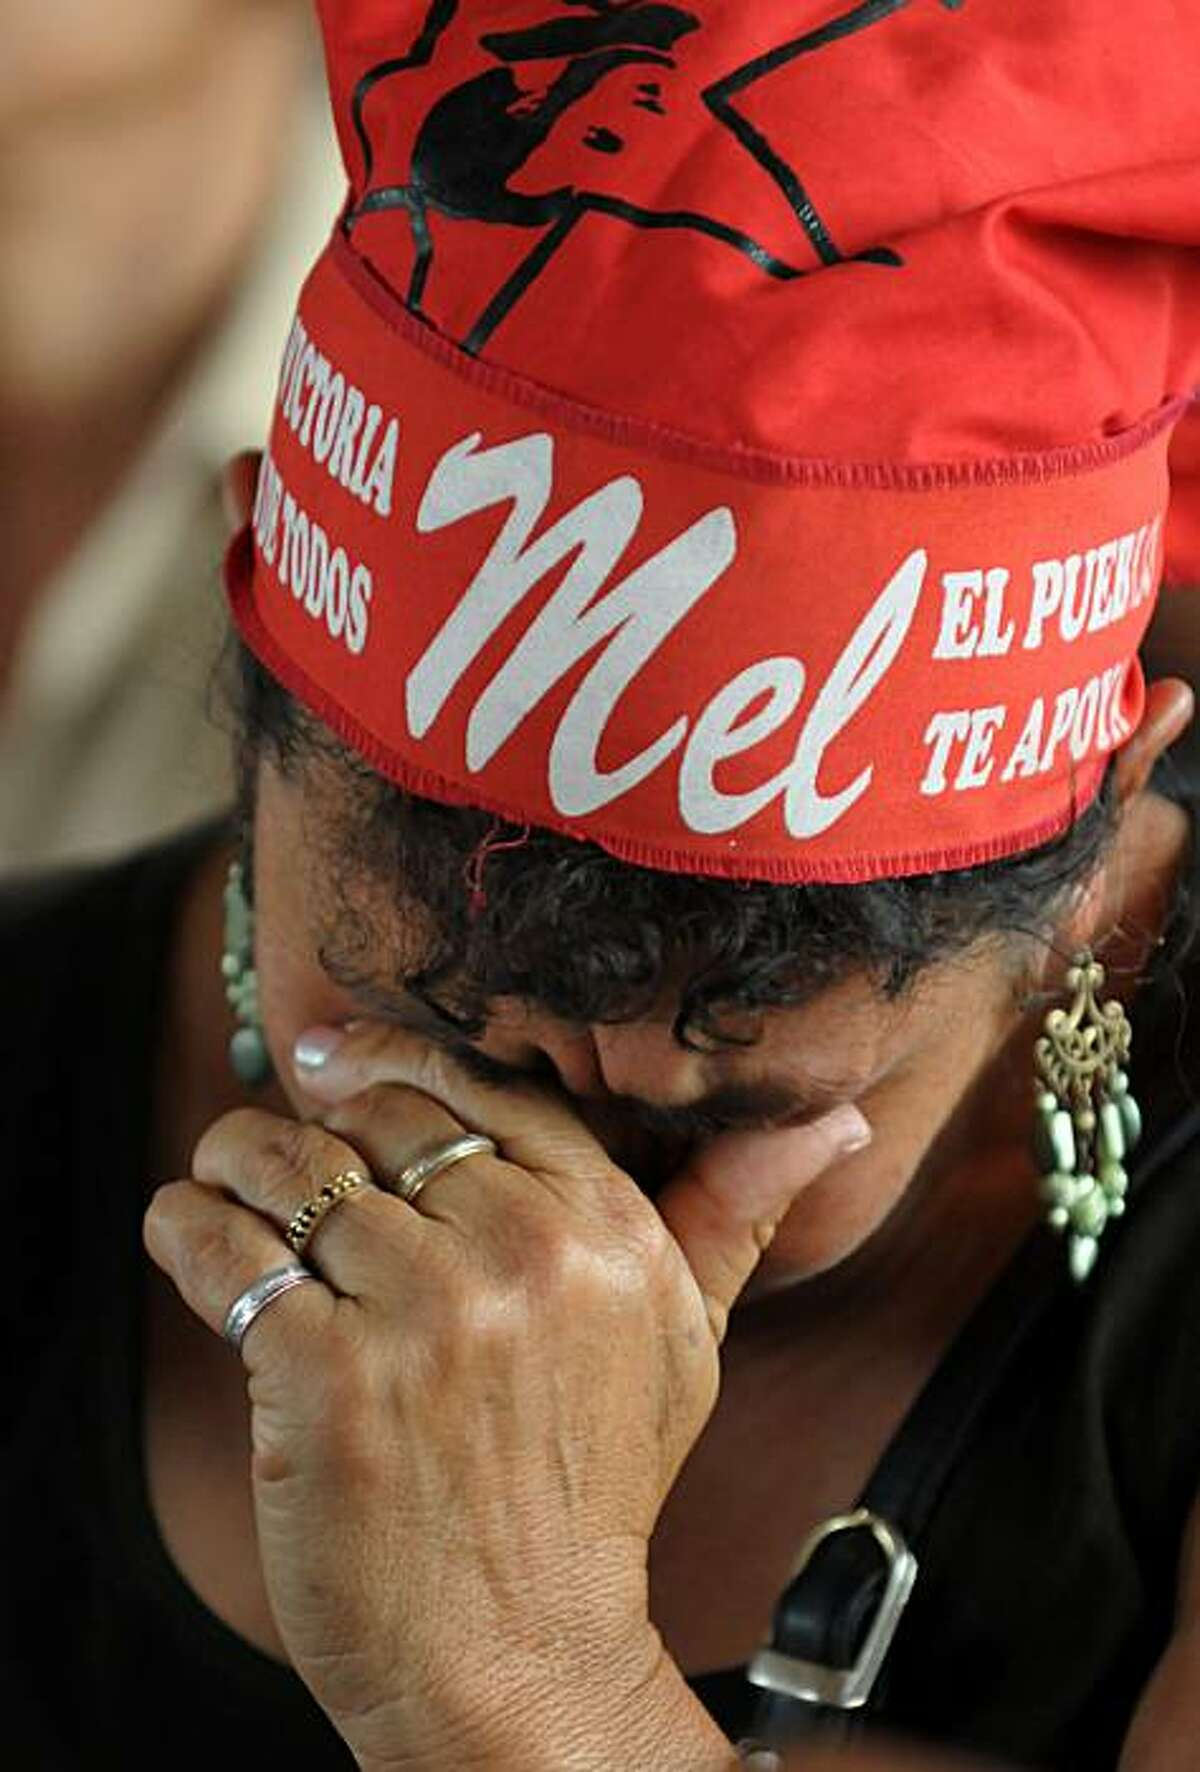 A supporter of ousted Honduran President Manuel Zelaya cries during meeting of the National Front of Resistance against the Coup in Tegucigalpa on December 3, 2009. Honduran lawmakers late Wednesday roundly rejected the reinstatement of ousted President Manuel Zelaya during a heated debate revisiting details of the June 28 coup which polarized the nation. The vote came as Honduras was in limbo, three days after conservative Porfirio Lobo won a controversial presidential election held under the de facto regime. TOPSHOTS/AFP PHOTO/Orlando SIERRA (Photo credit should read ORLANDO SIERRA/AFP/Getty Images)